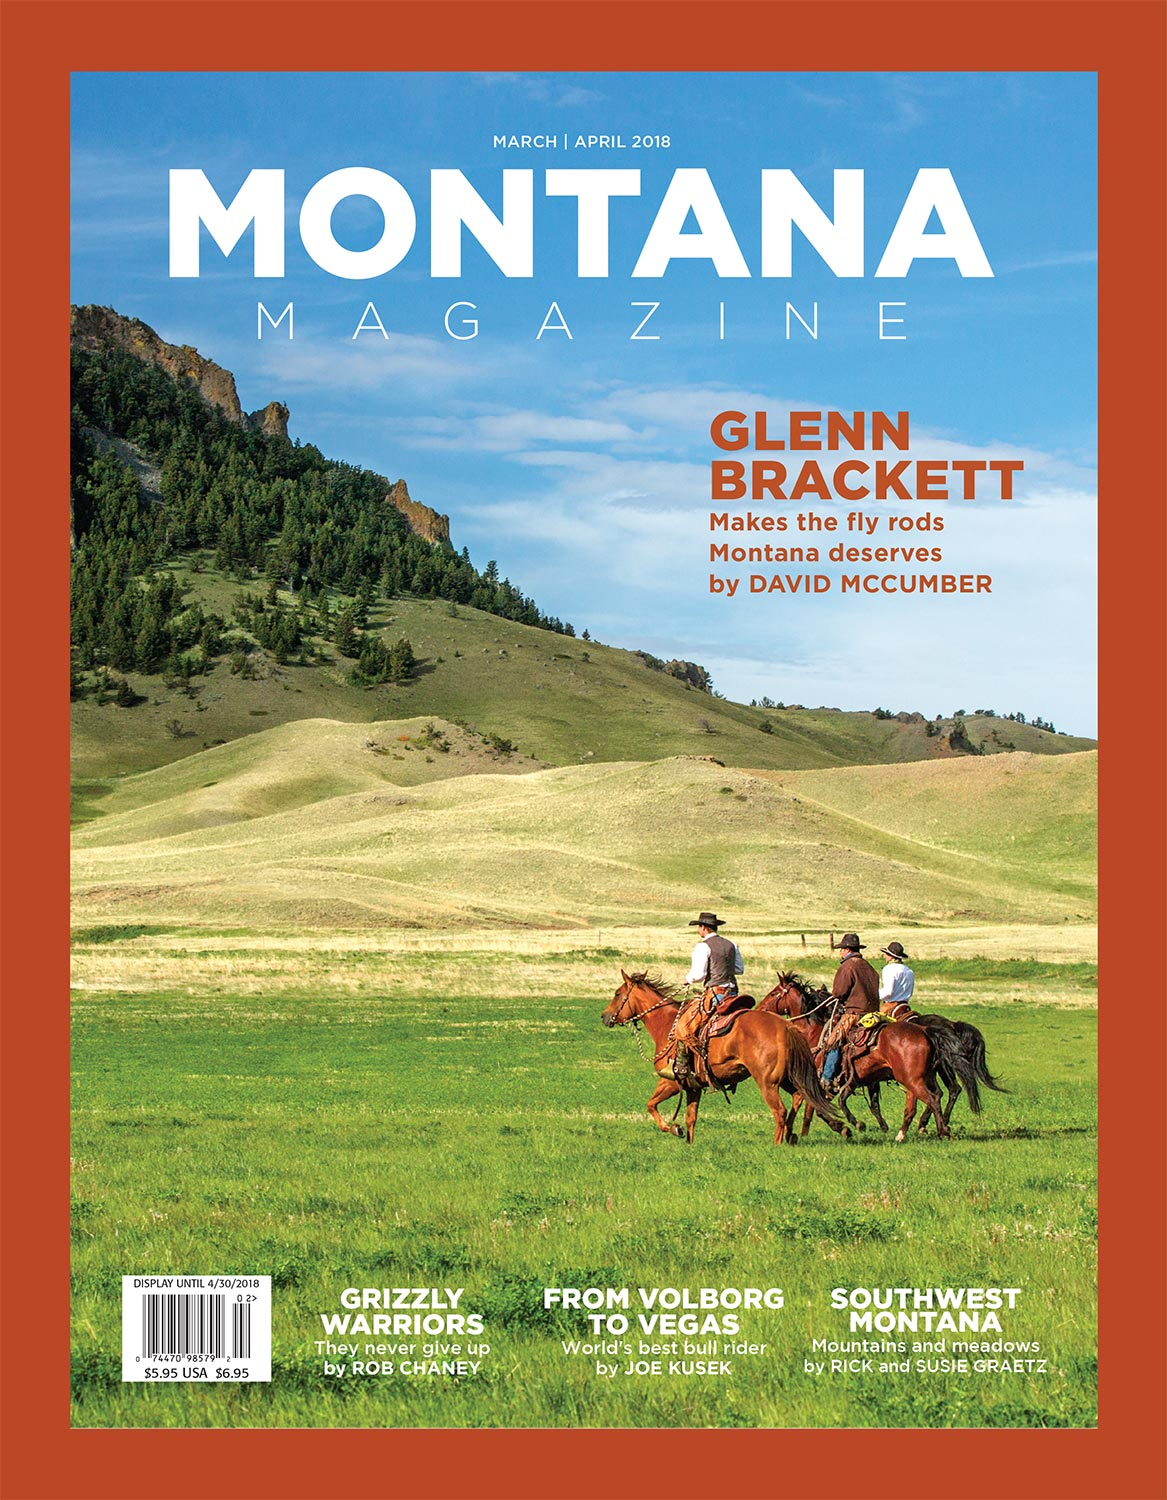 Cowboy Photos Appear in March 2018 Issue of Montana Magazine